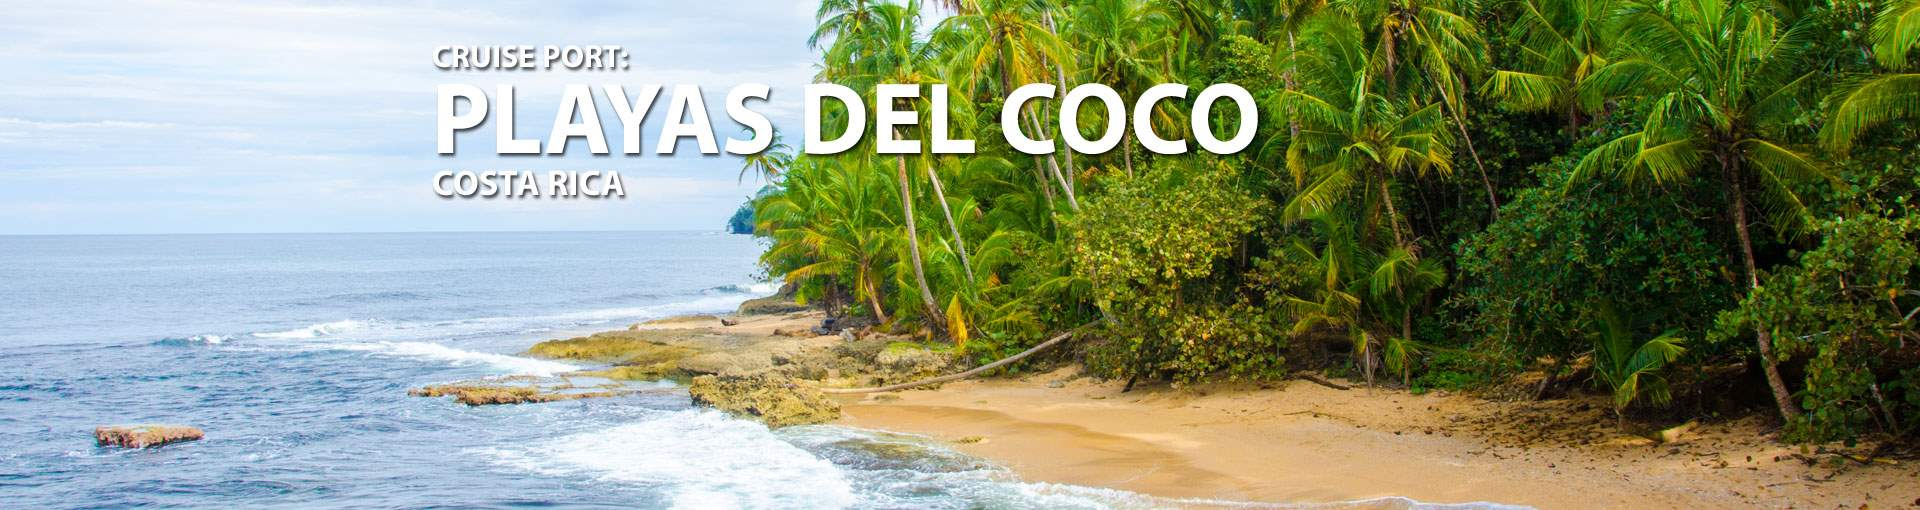 Cruises to Playas Del Coco, Costa Rica